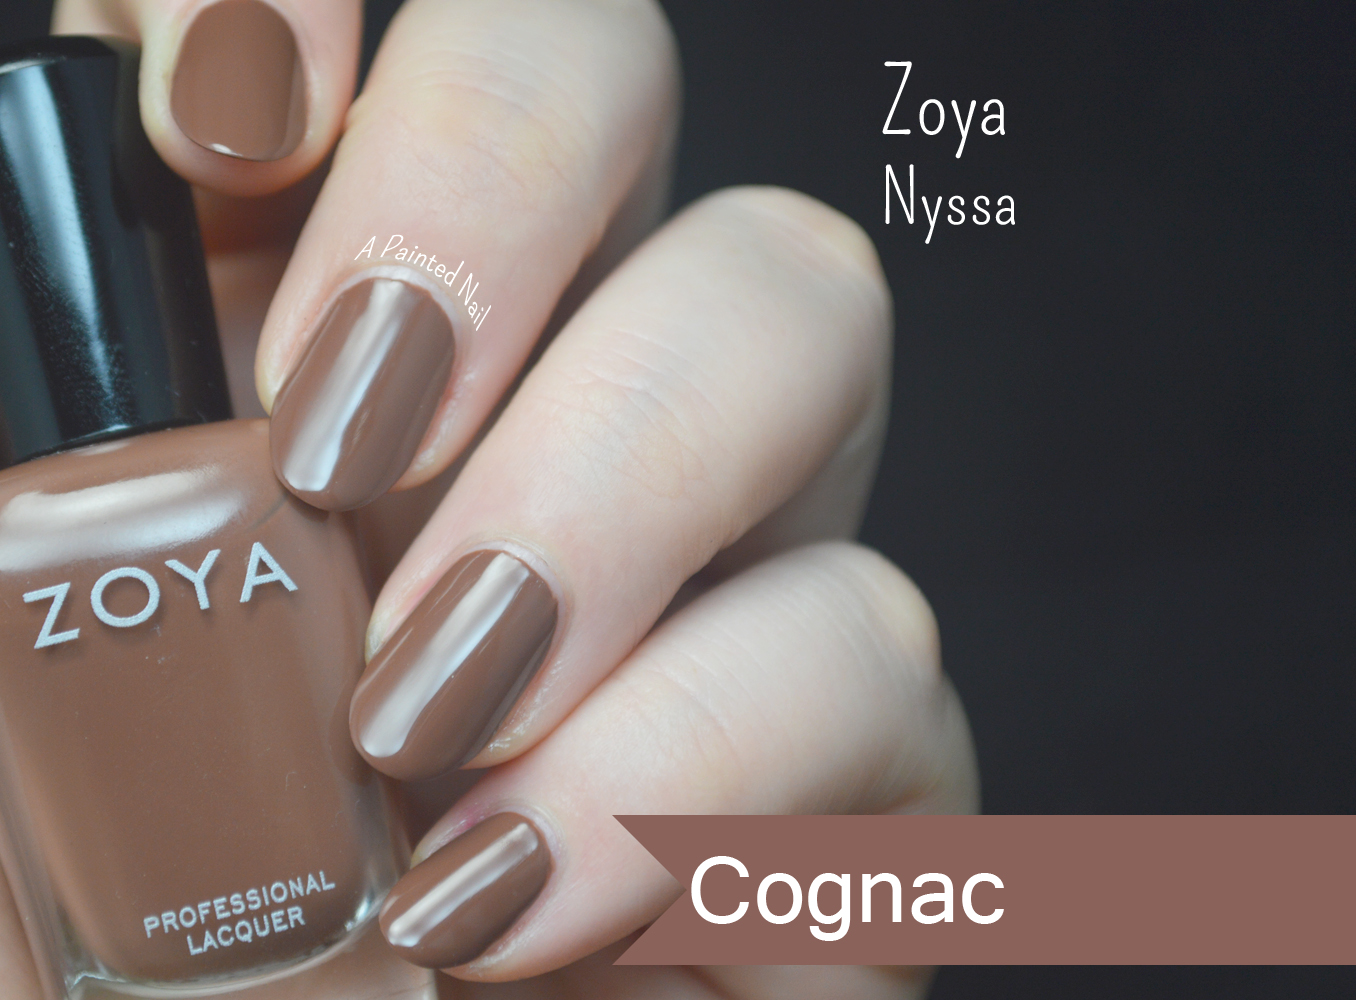 a painted nail zoya nyssa fall winter 2014 color trend